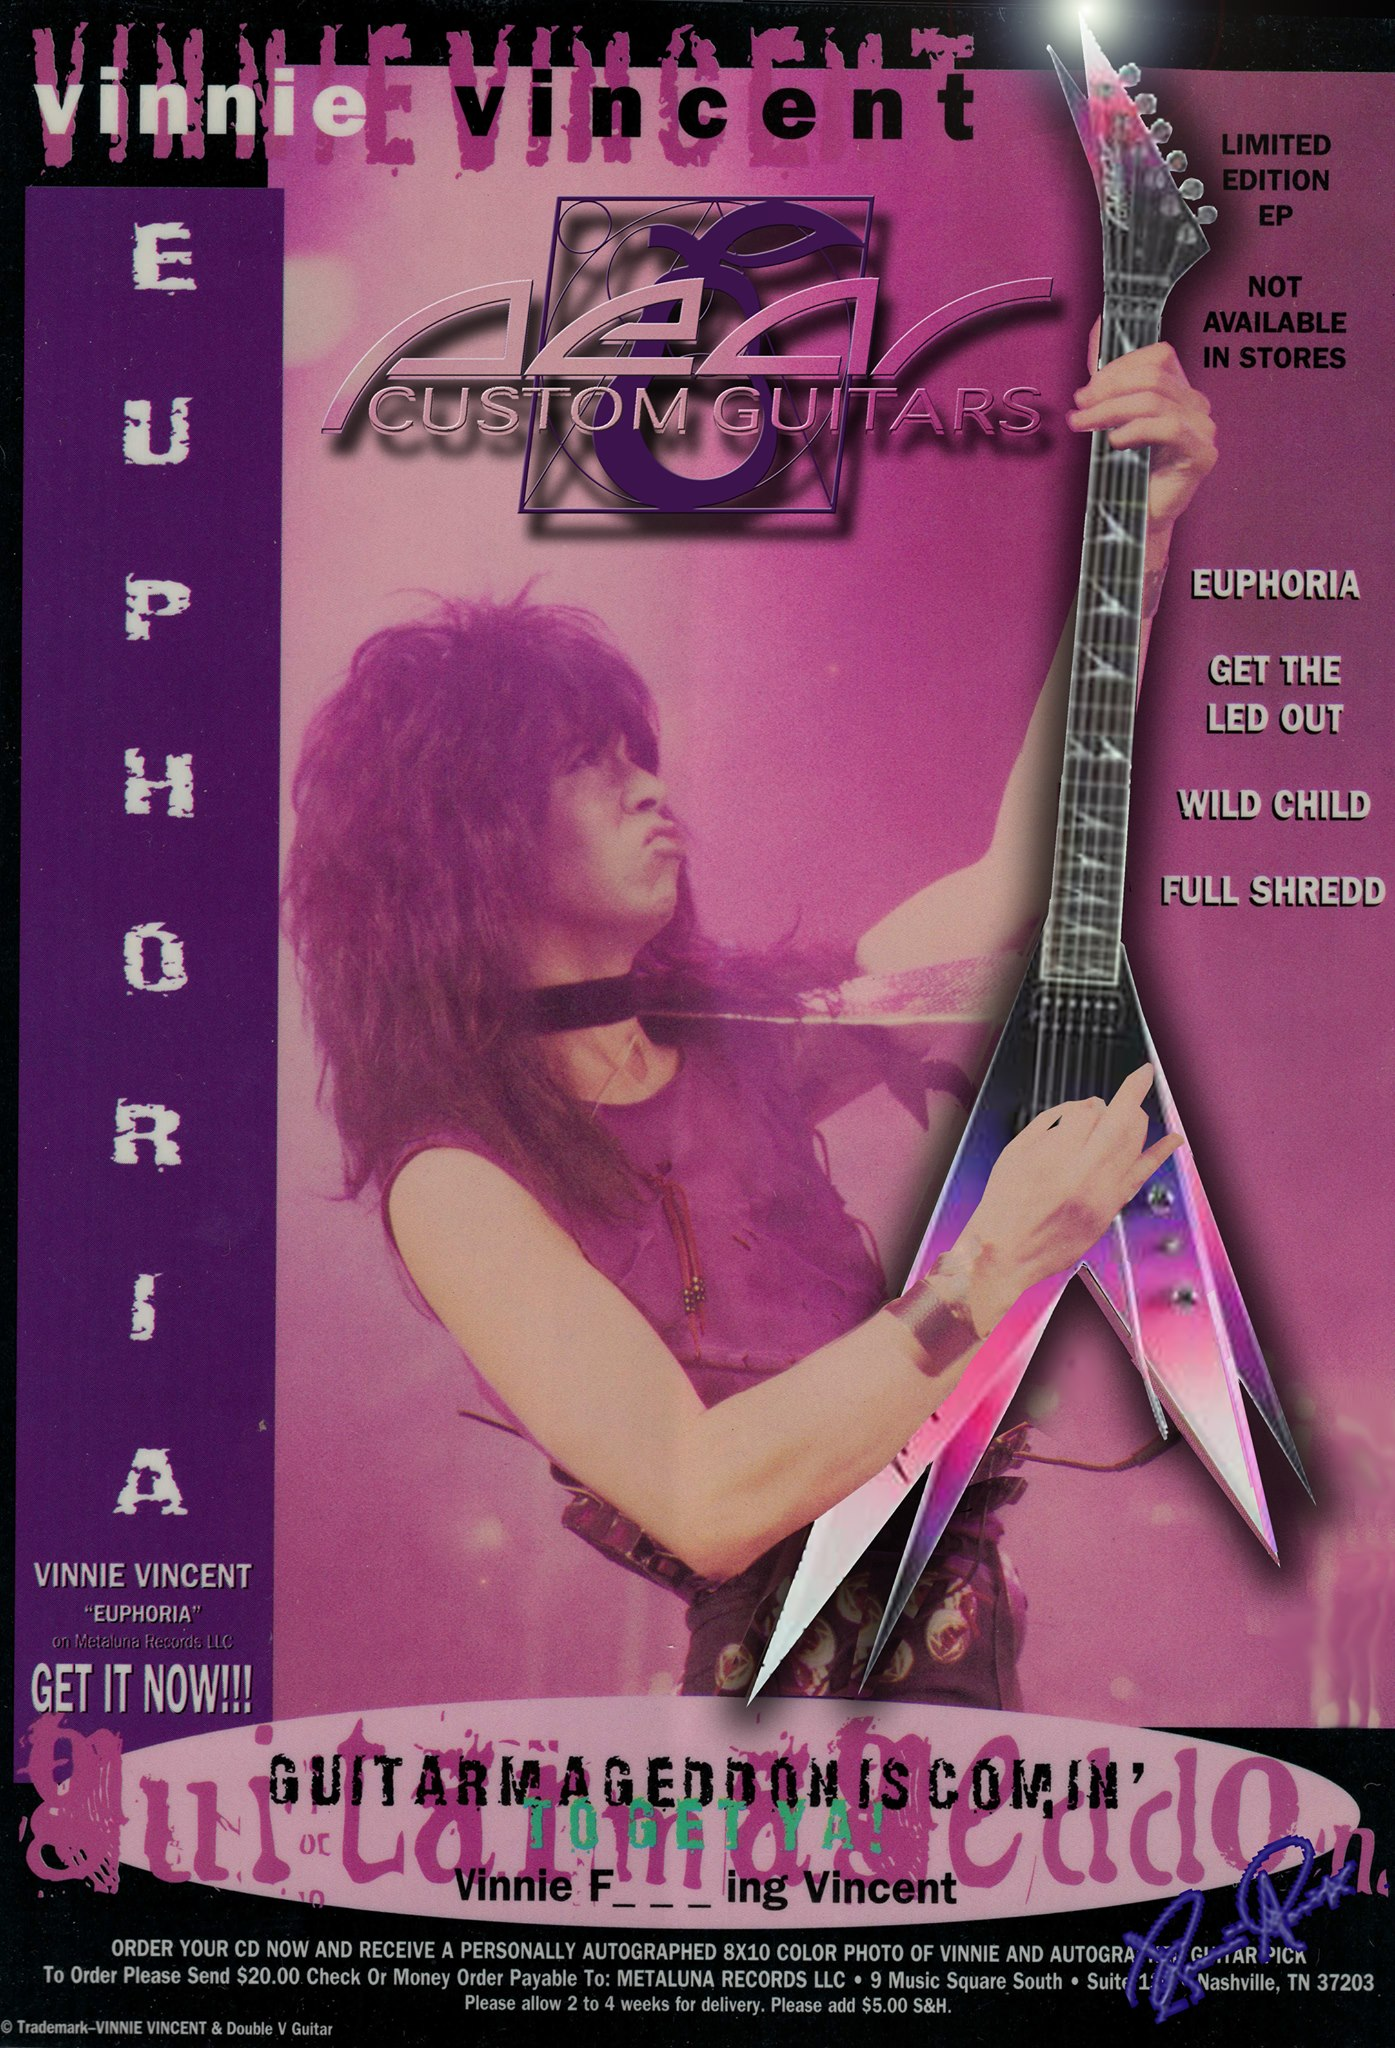 Vinnie Vincent Euphoria Final  copy small11402893_927073190667085_4939482265112181659_o.jpg